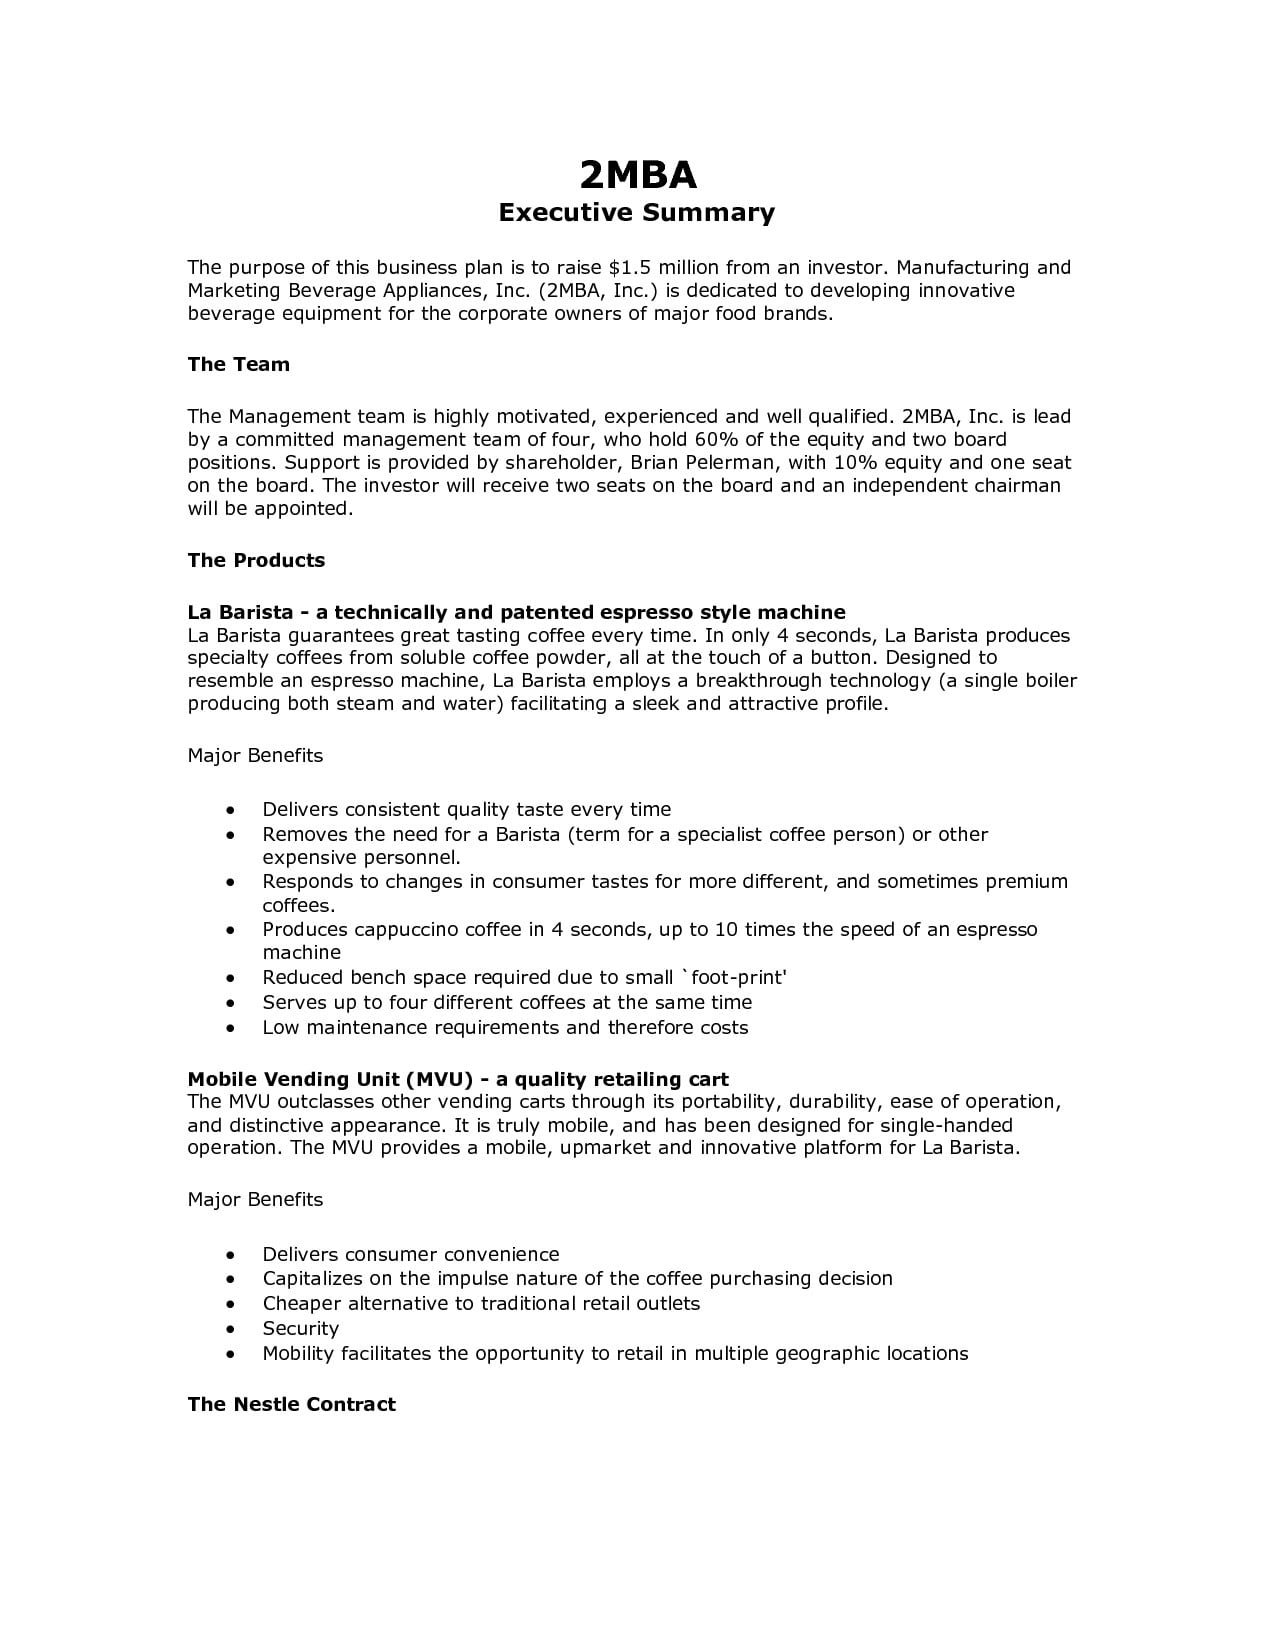 8 executive summary marketing plan examples pdf